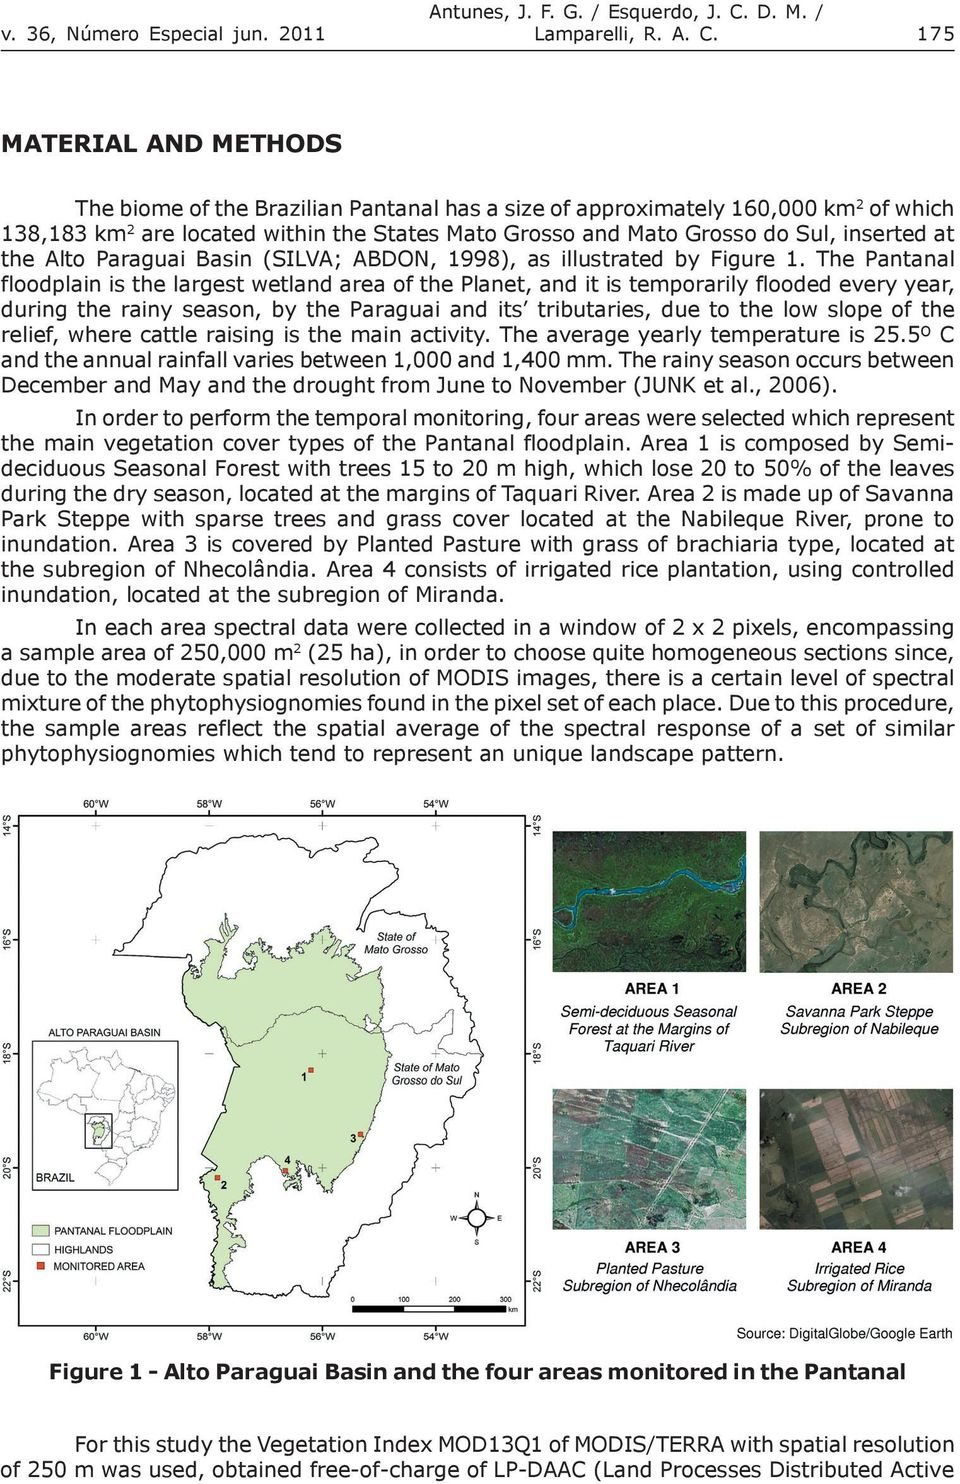 175 MATERIAL AND METHODS The biome of the Brazilian Pantanal has a size of approximately 160,000 km 2 of which 138,183 km 2 are located within the States Mato Grosso and Mato Grosso do Sul, inserted